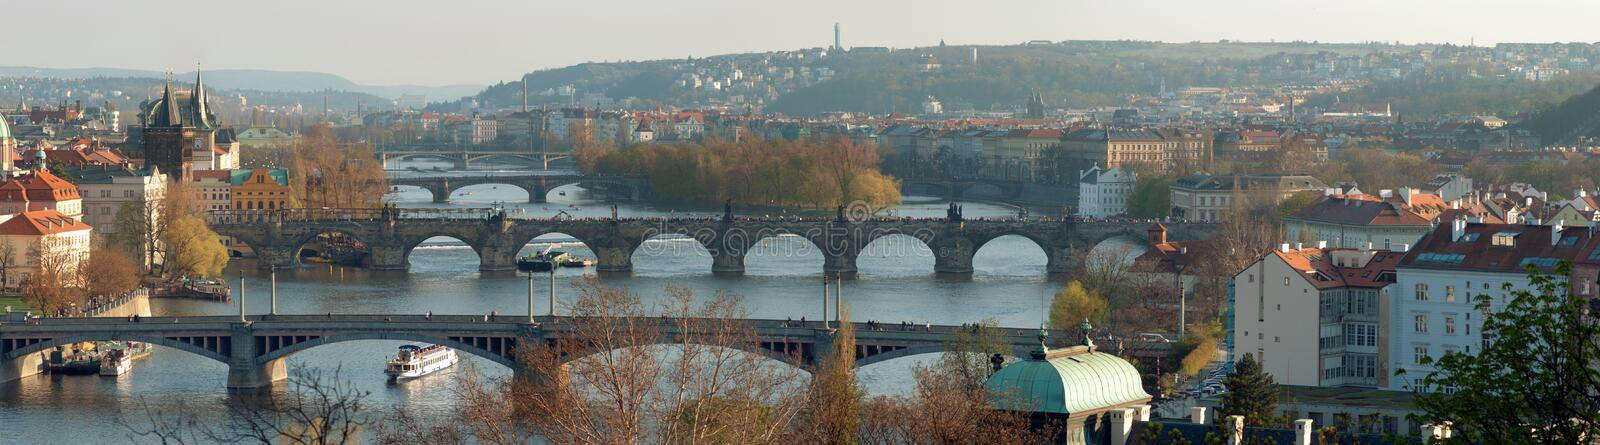 Download Brocharles panorama prague arkivfoto. Bild av trafik - 19793710